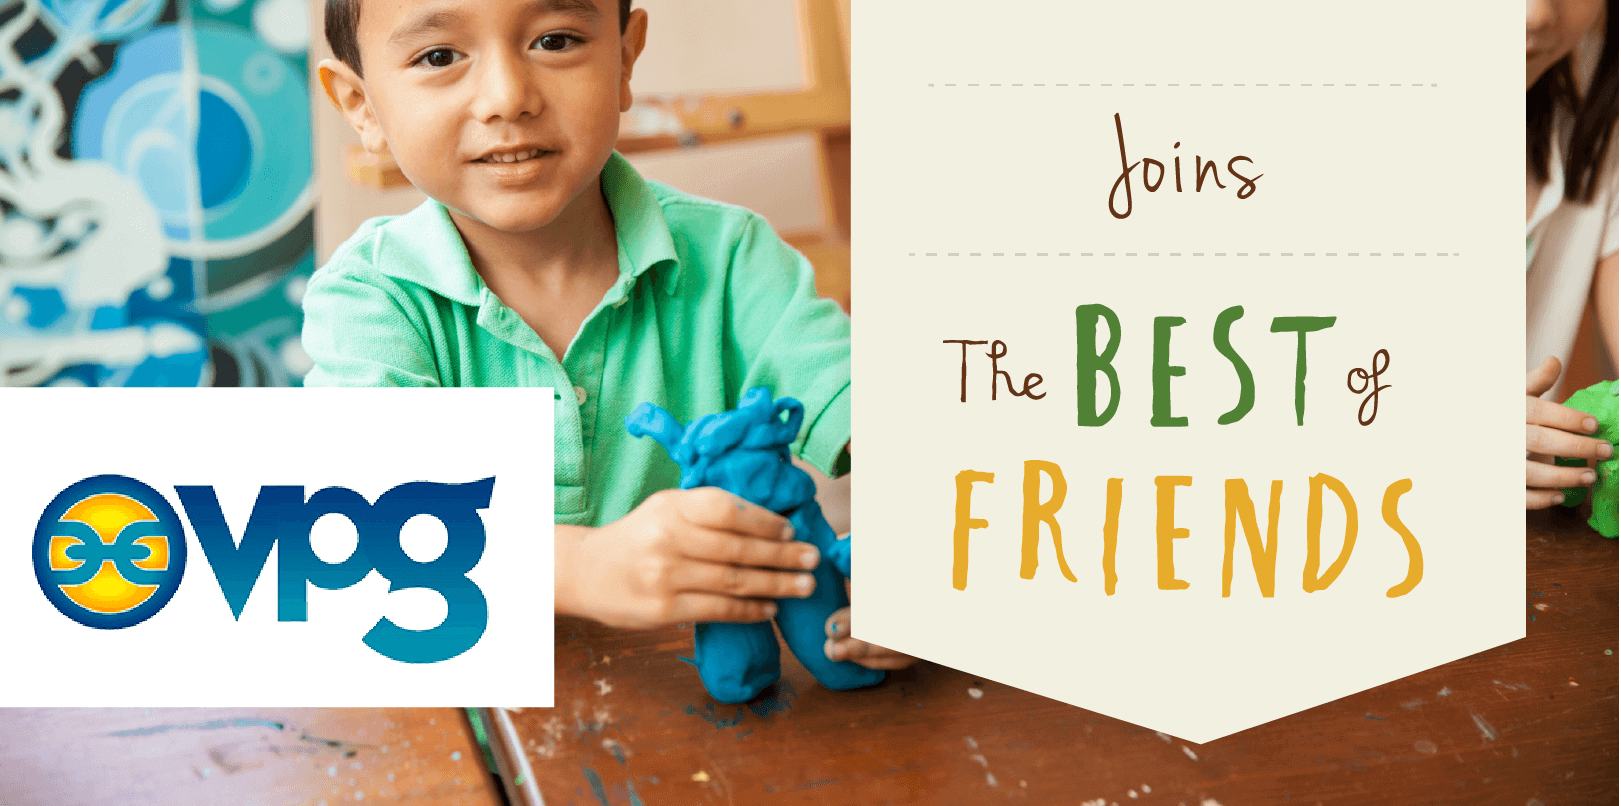 Vocational Partner Group and The Best of Friends